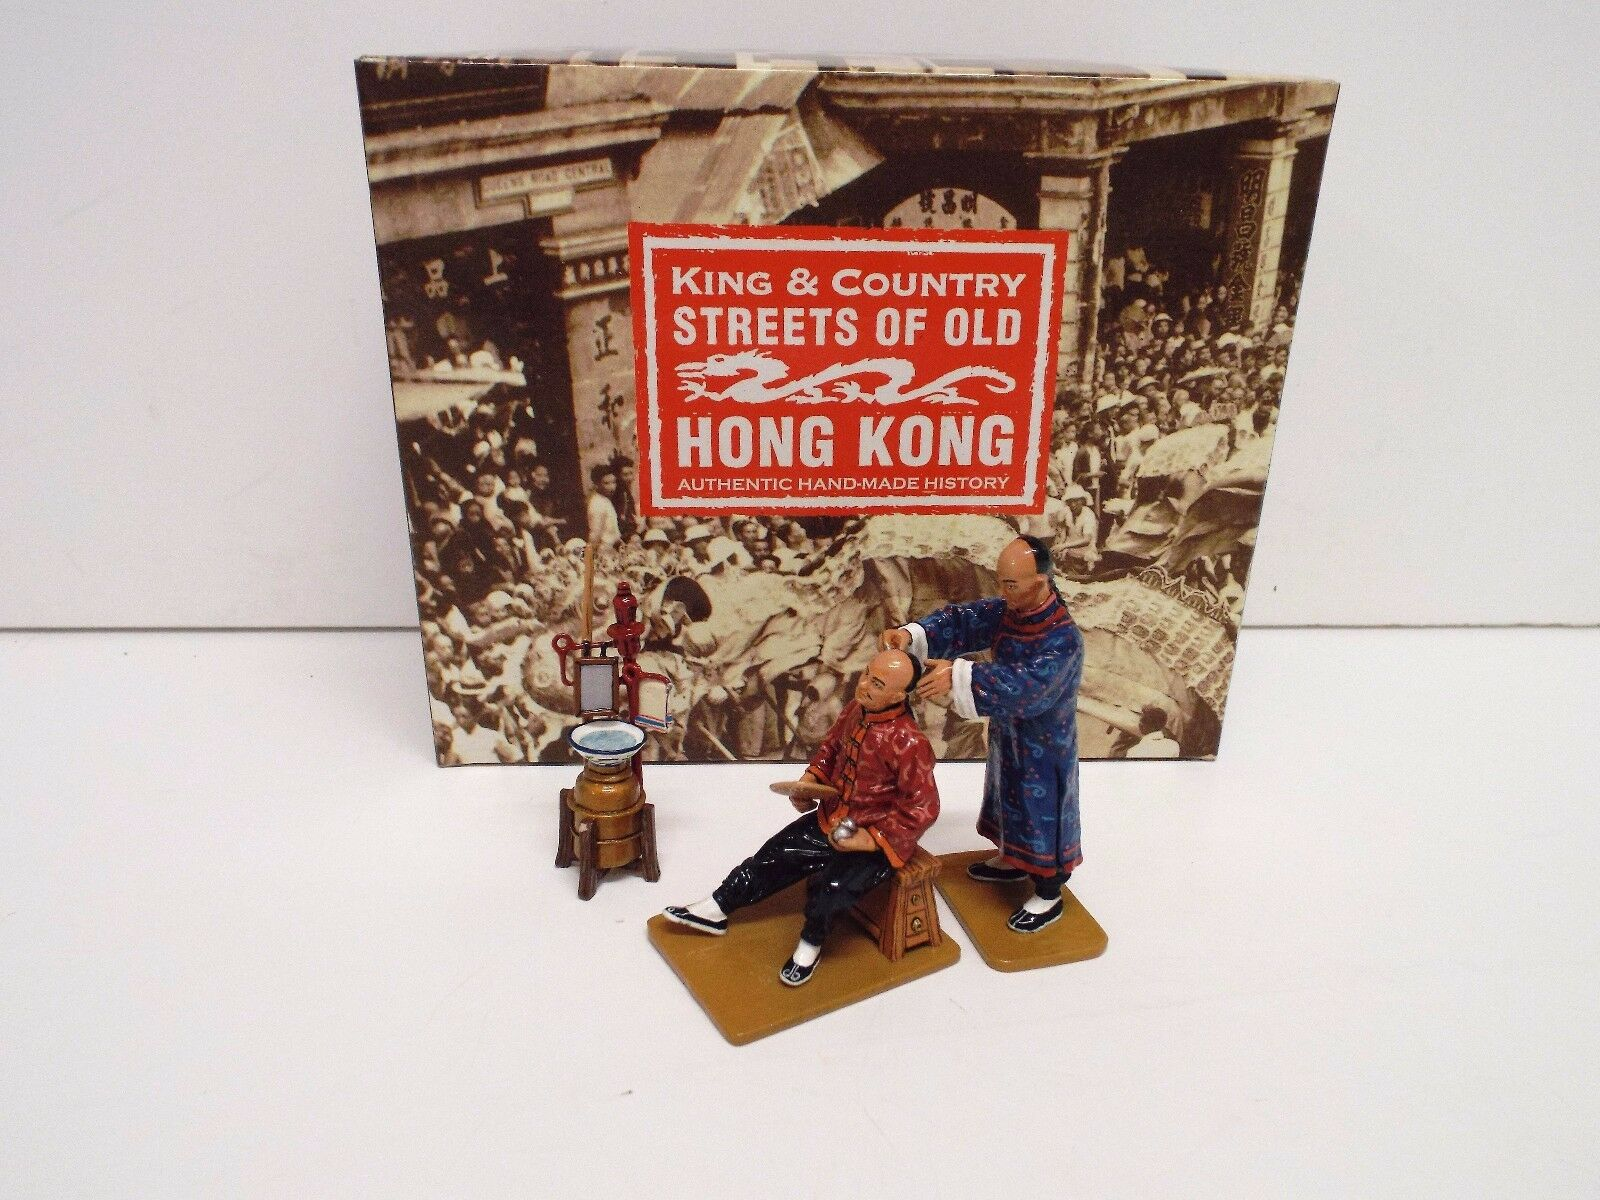 KING AND COUNTRY HK157G S.O.O.H.K NEW STREET BARBER'S SET RETIRED BOXED (BS2117)